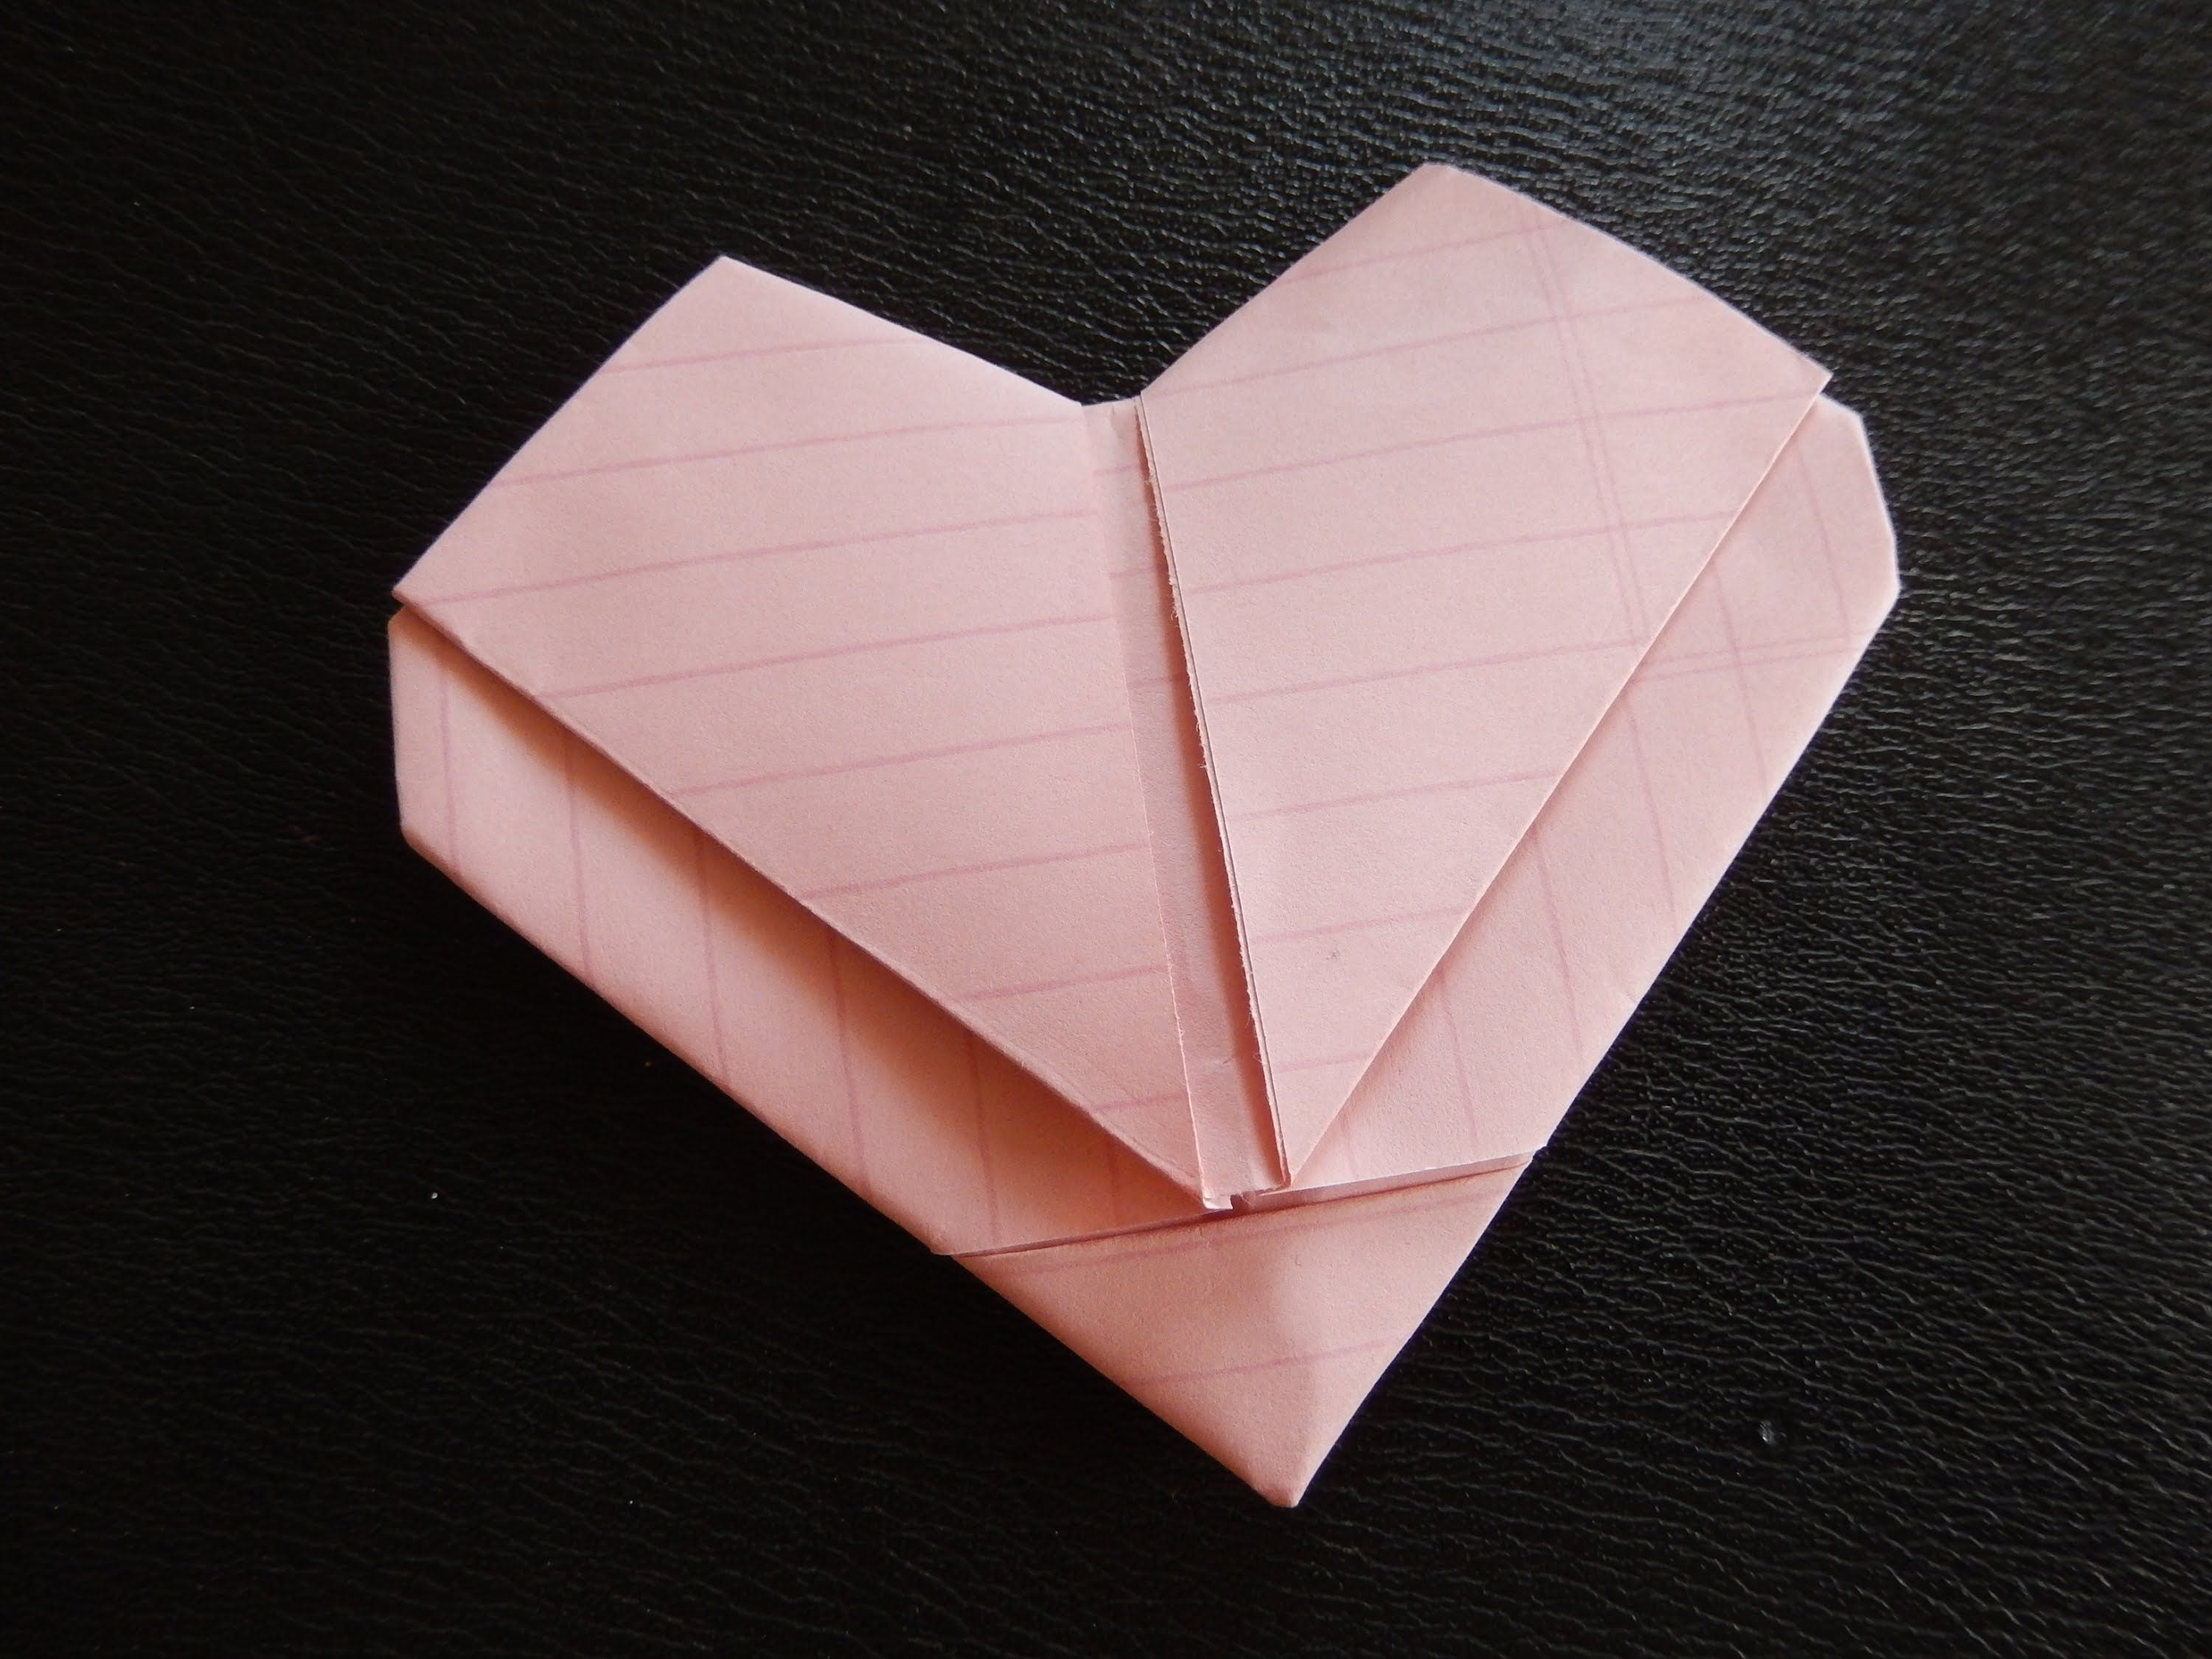 Day 17 How To Make Heart Out Of Regular Size Paper How To Fold Notes Valentines Letter Paper Heart